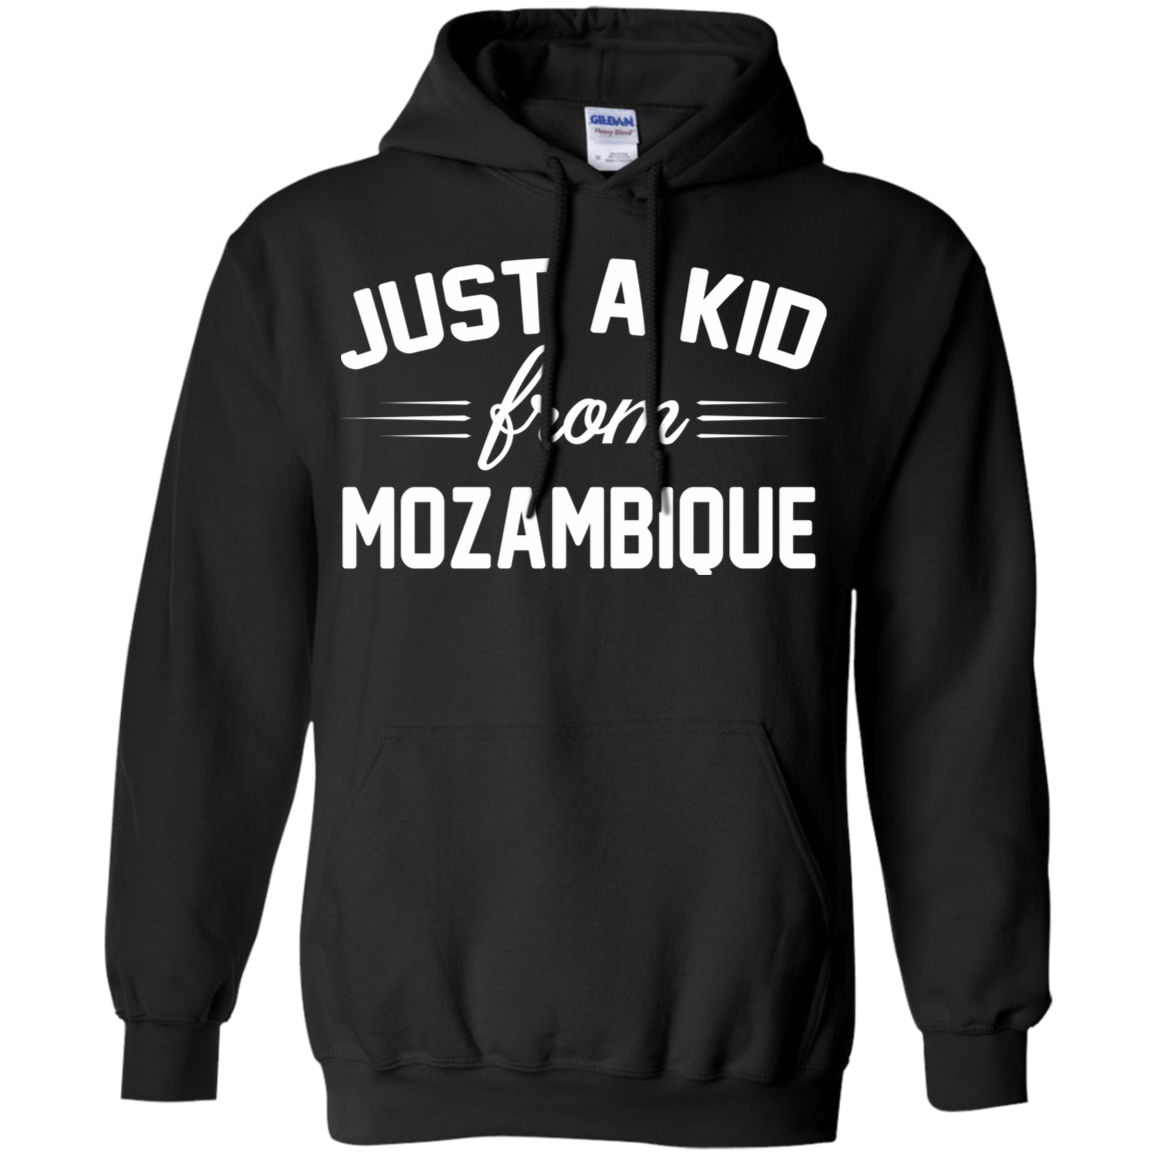 Just a Kid Store | Mozambique T-Shirts, Hoodie, Tank 541-4740-72091588-23087 - Tee Ript